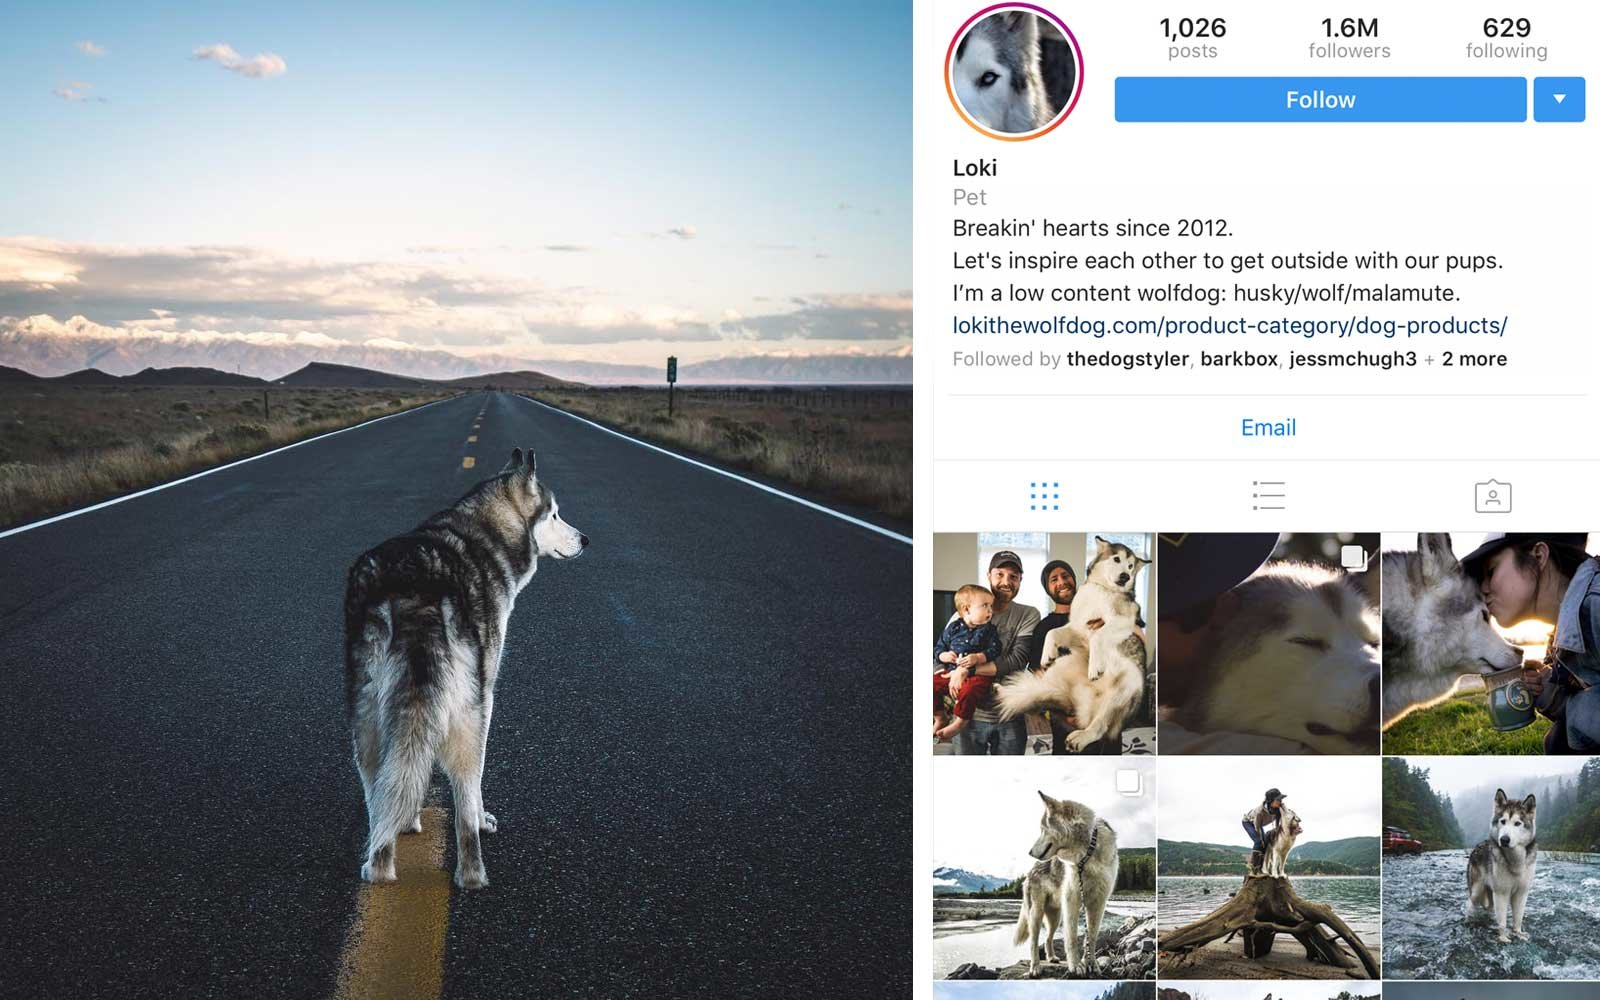 Loki (@loki_the_wolfdog) - Husky, US - 1.6M Followers